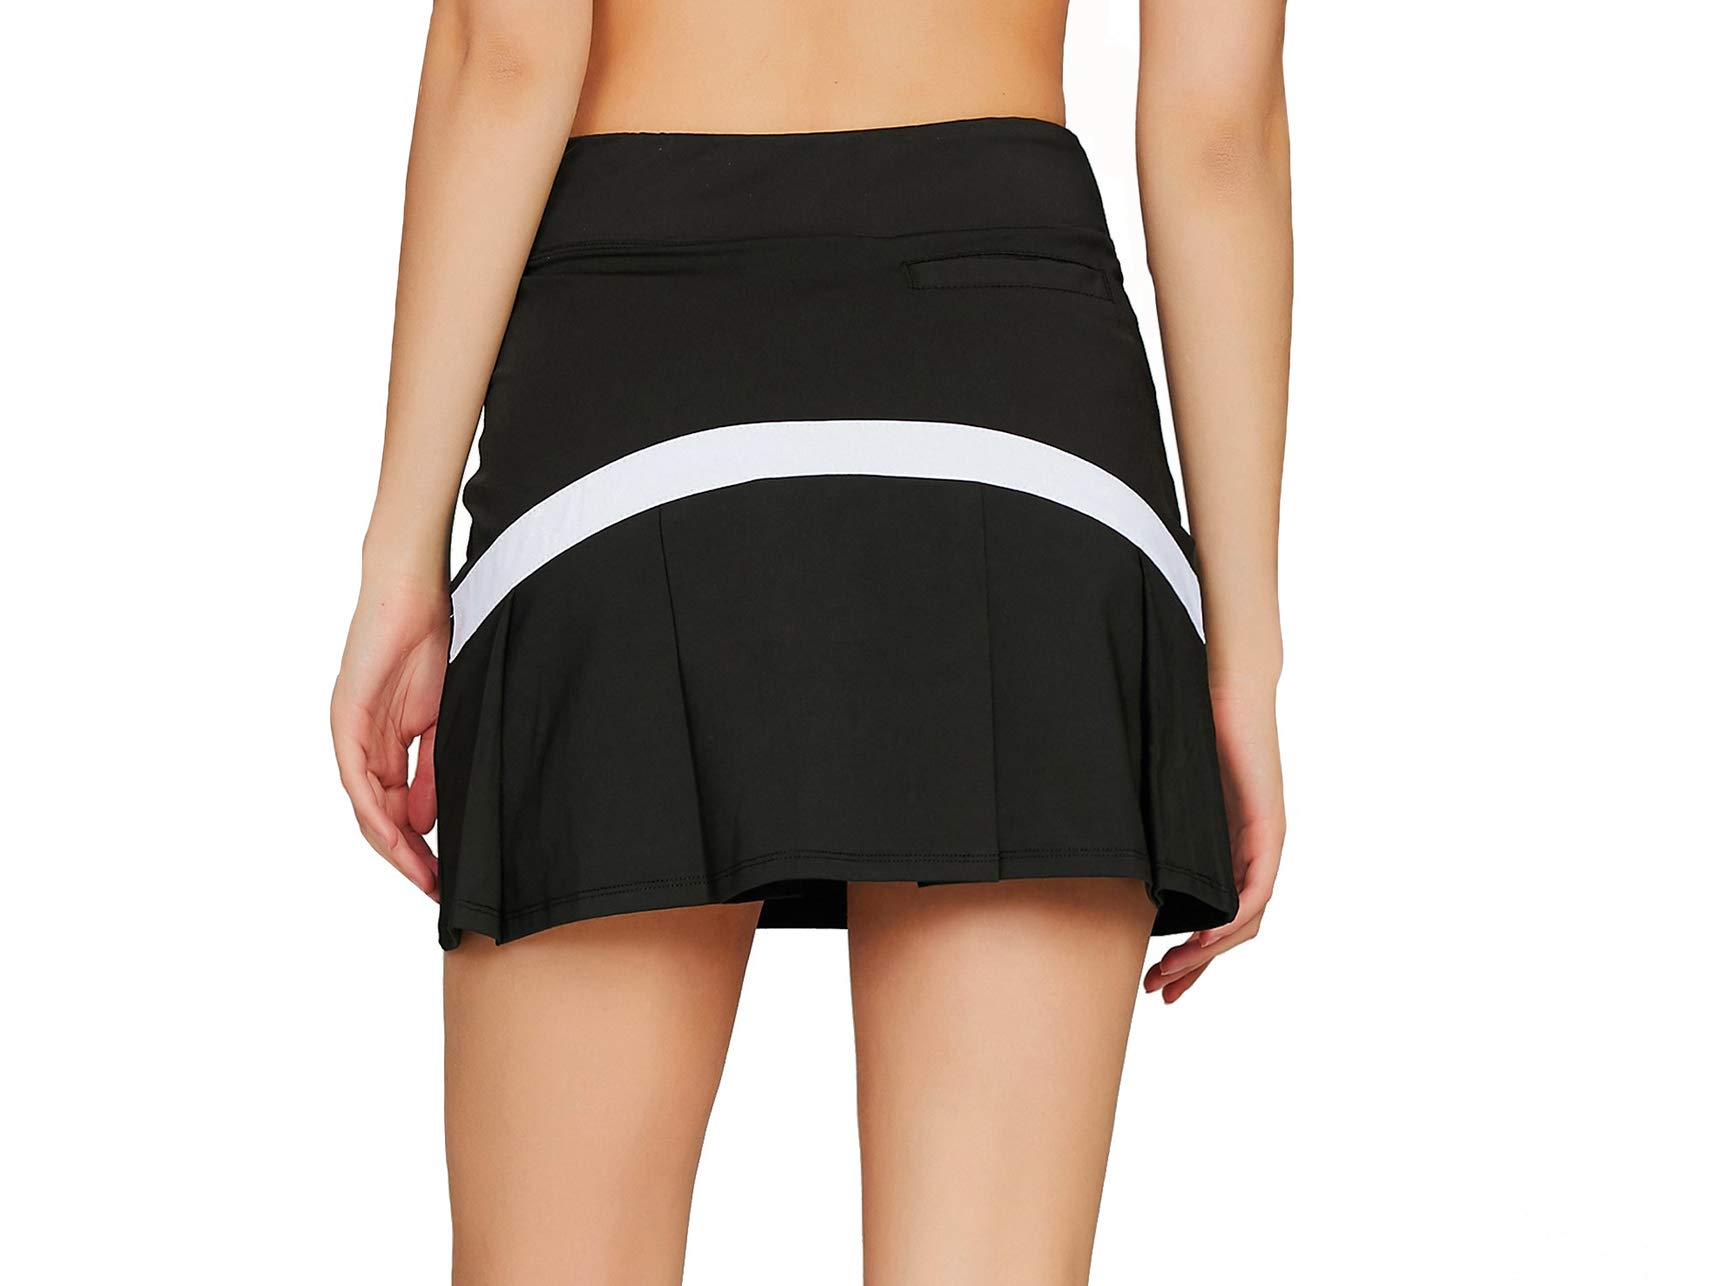 Cityoung Women's Casual Pleated Tennis Golf Skirt with Underneath Shorts Running Skorts bk_wh XL by Cityoung